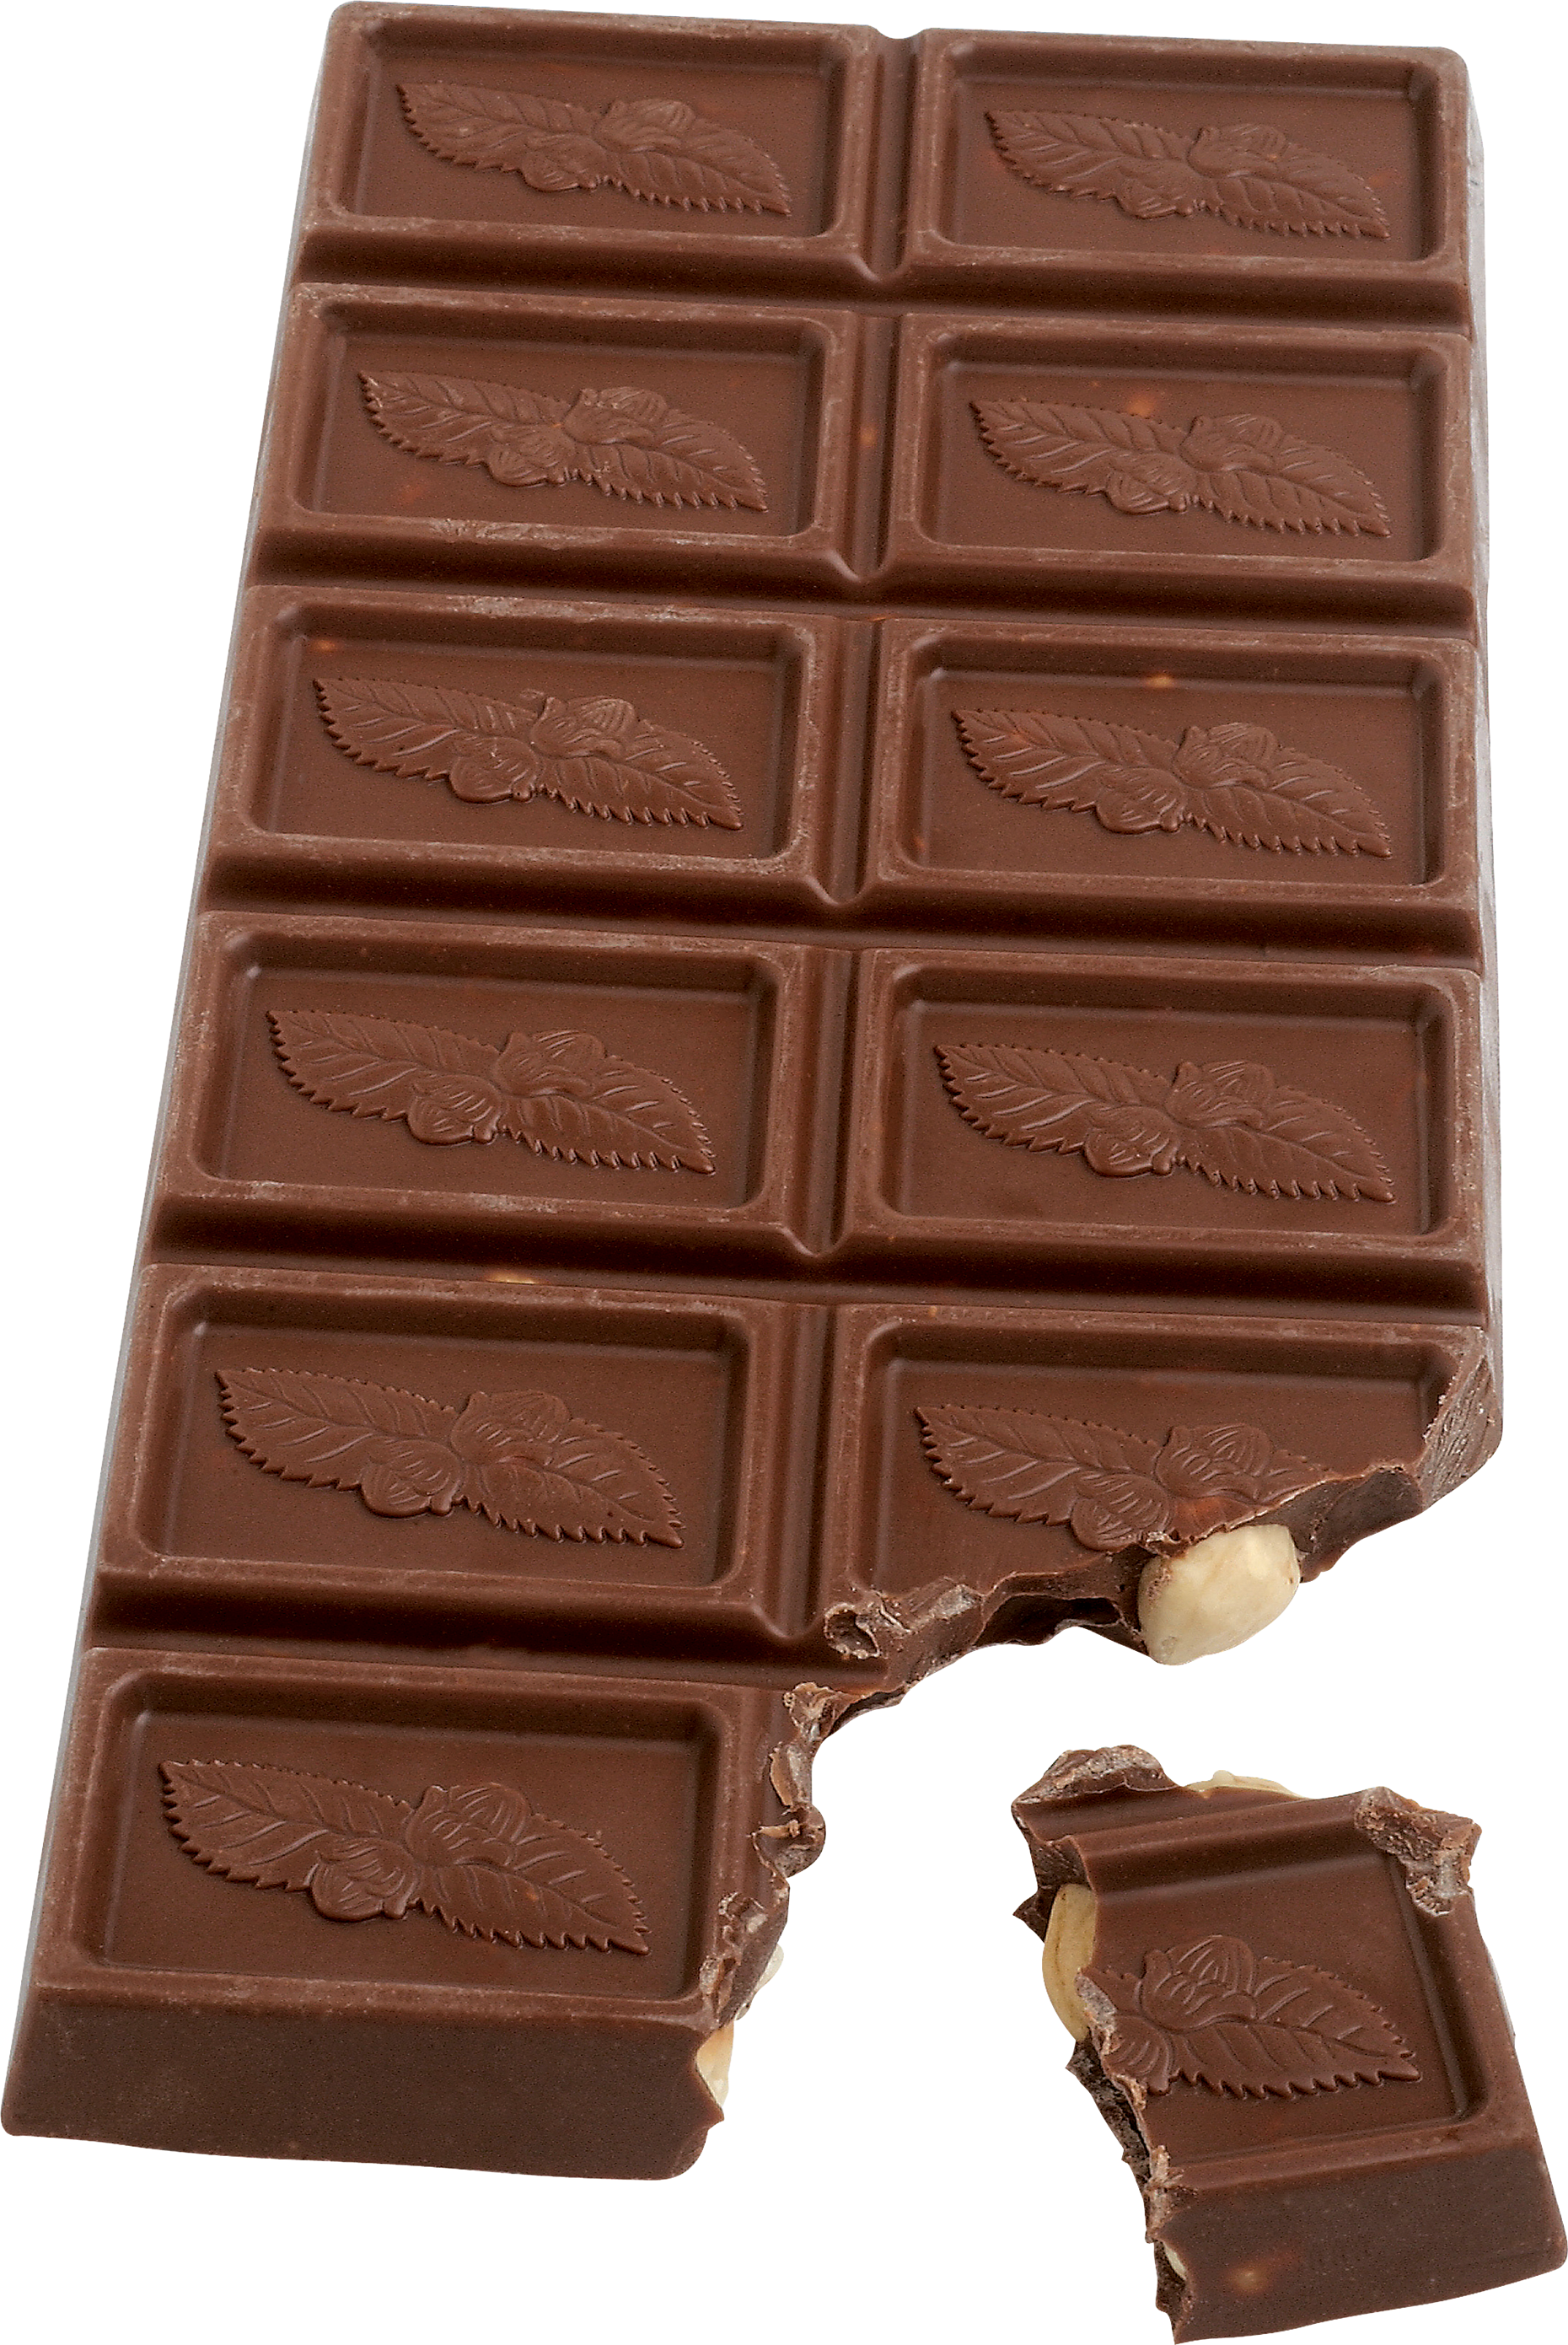 Kitkat drawing half eaten chocolate bar. Png images free pictures